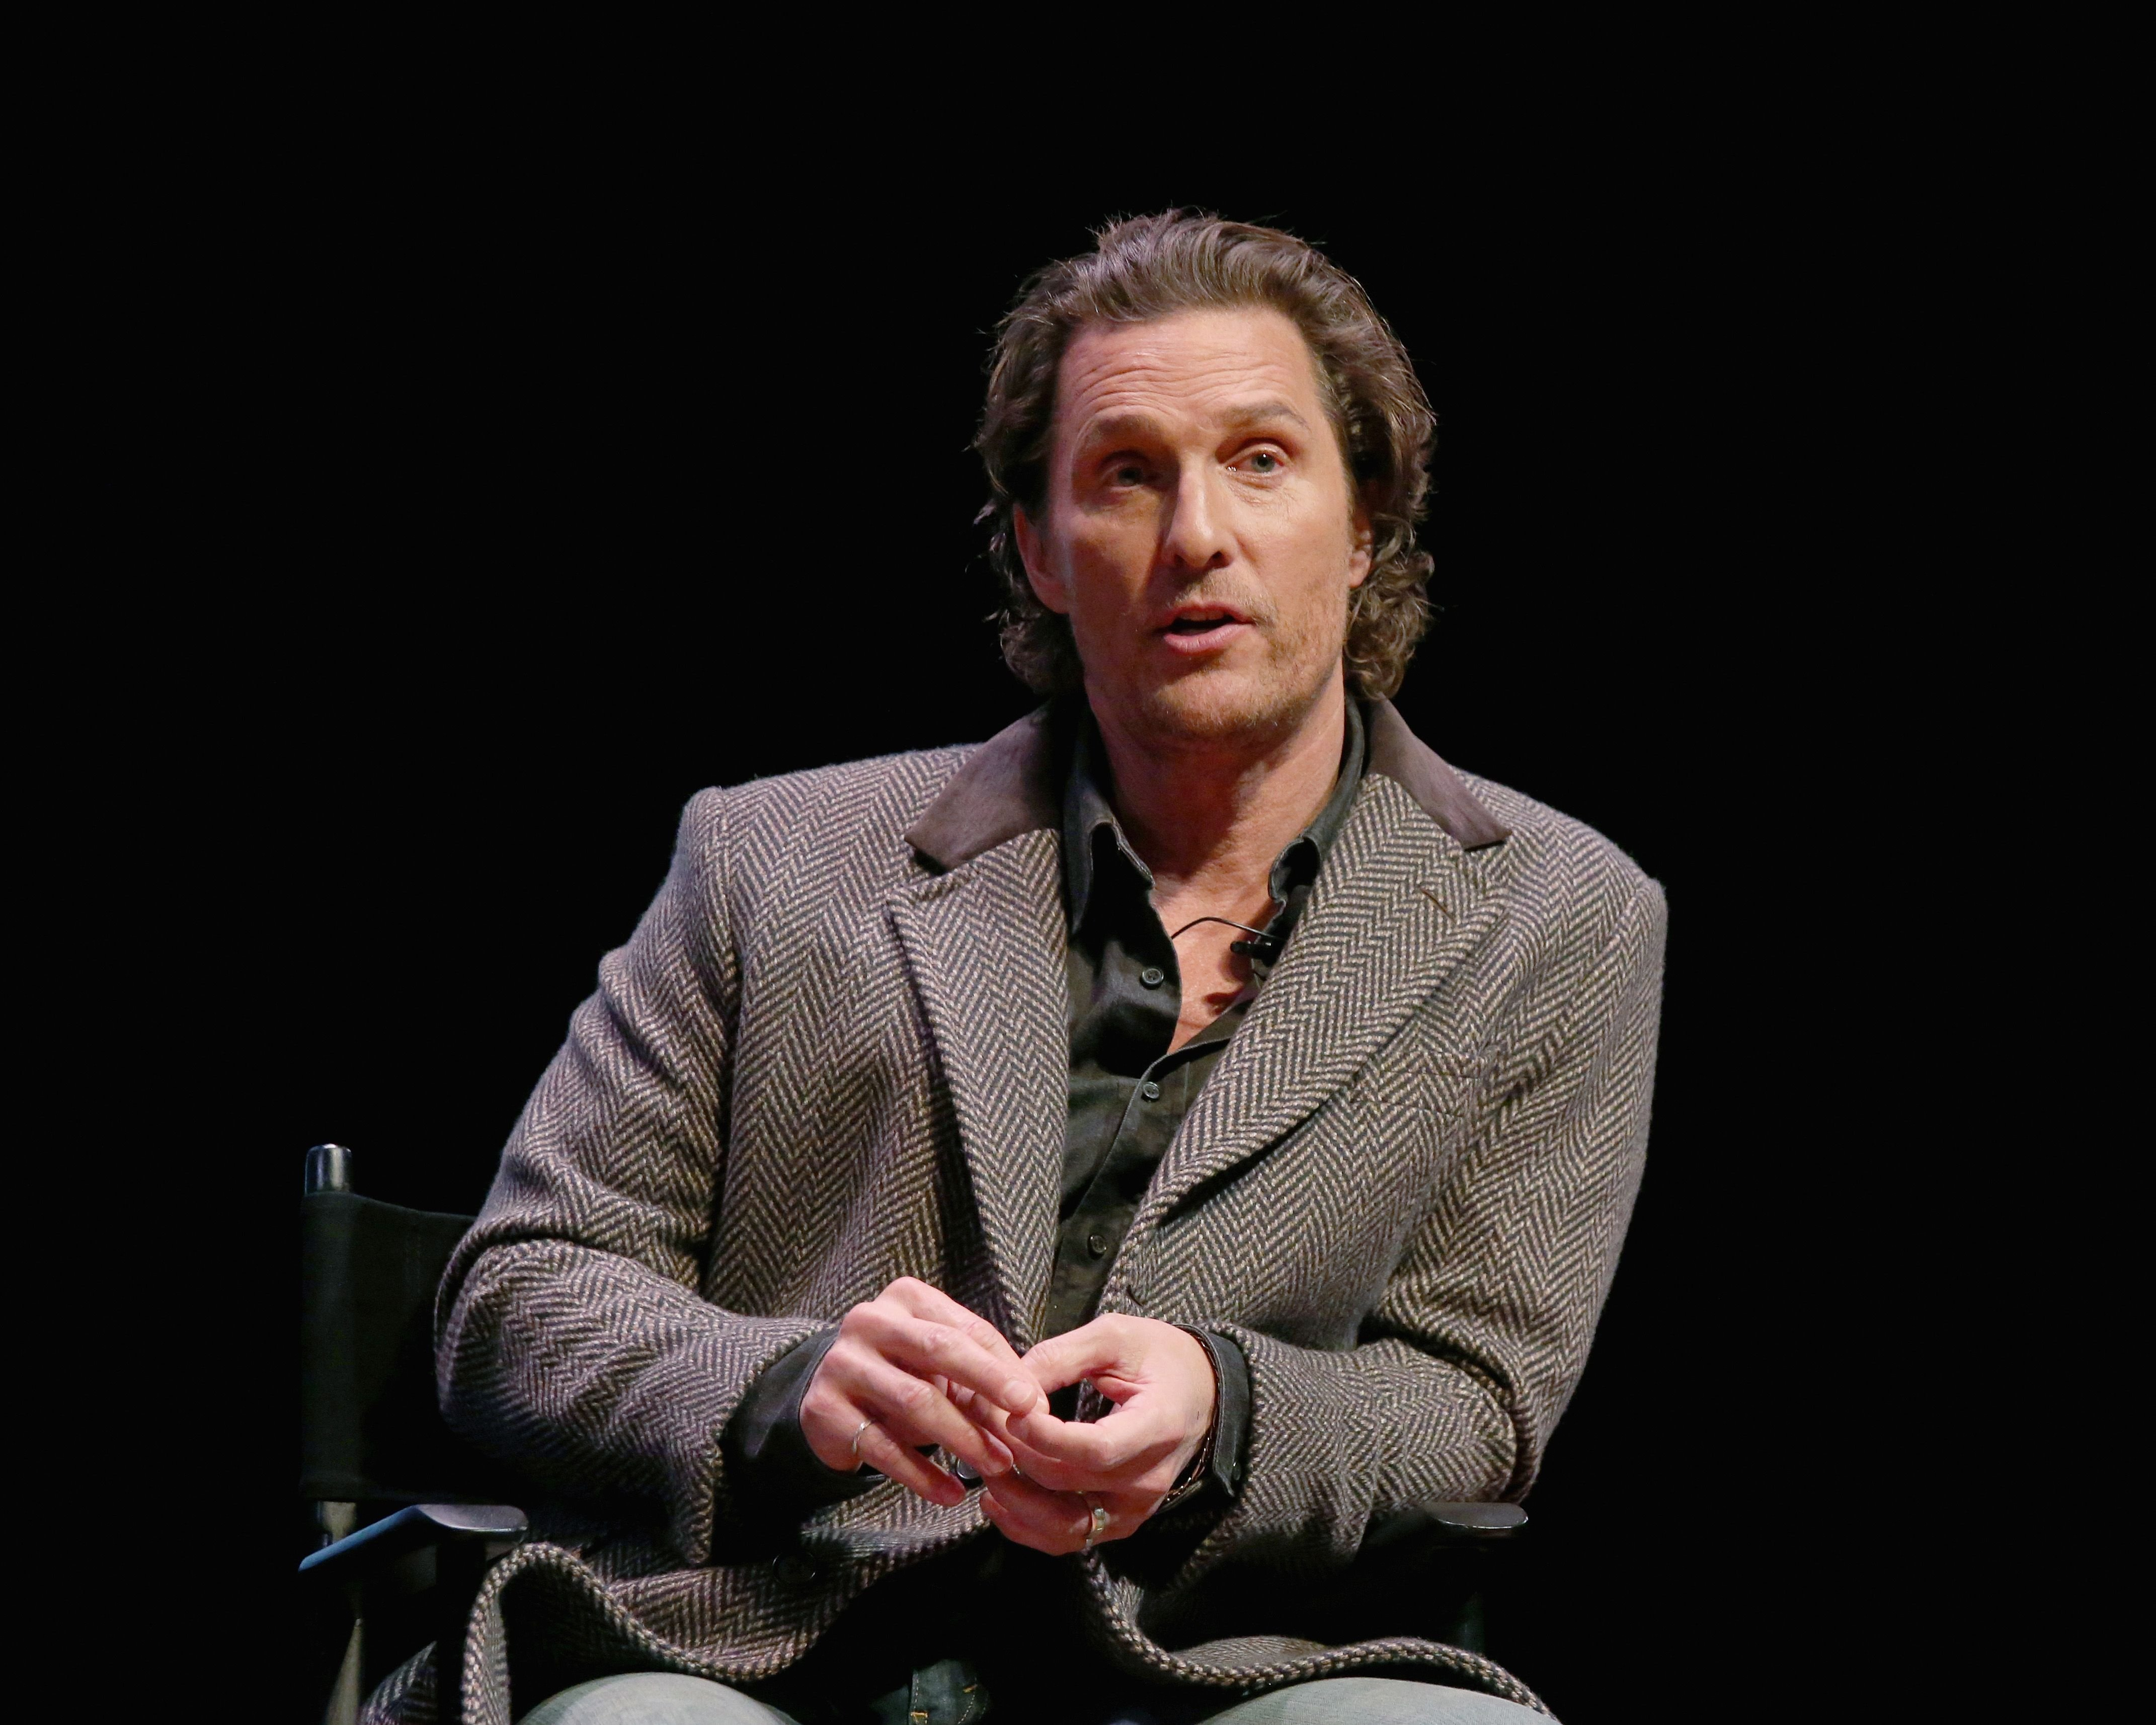 """Matthew McConaughey in a Q&A after a special screening of his film """"The Gentlemen"""" at Hogg Memorial Auditorium at The University of Texas at Austin on January 21, 2020   Photo: Getty Images"""